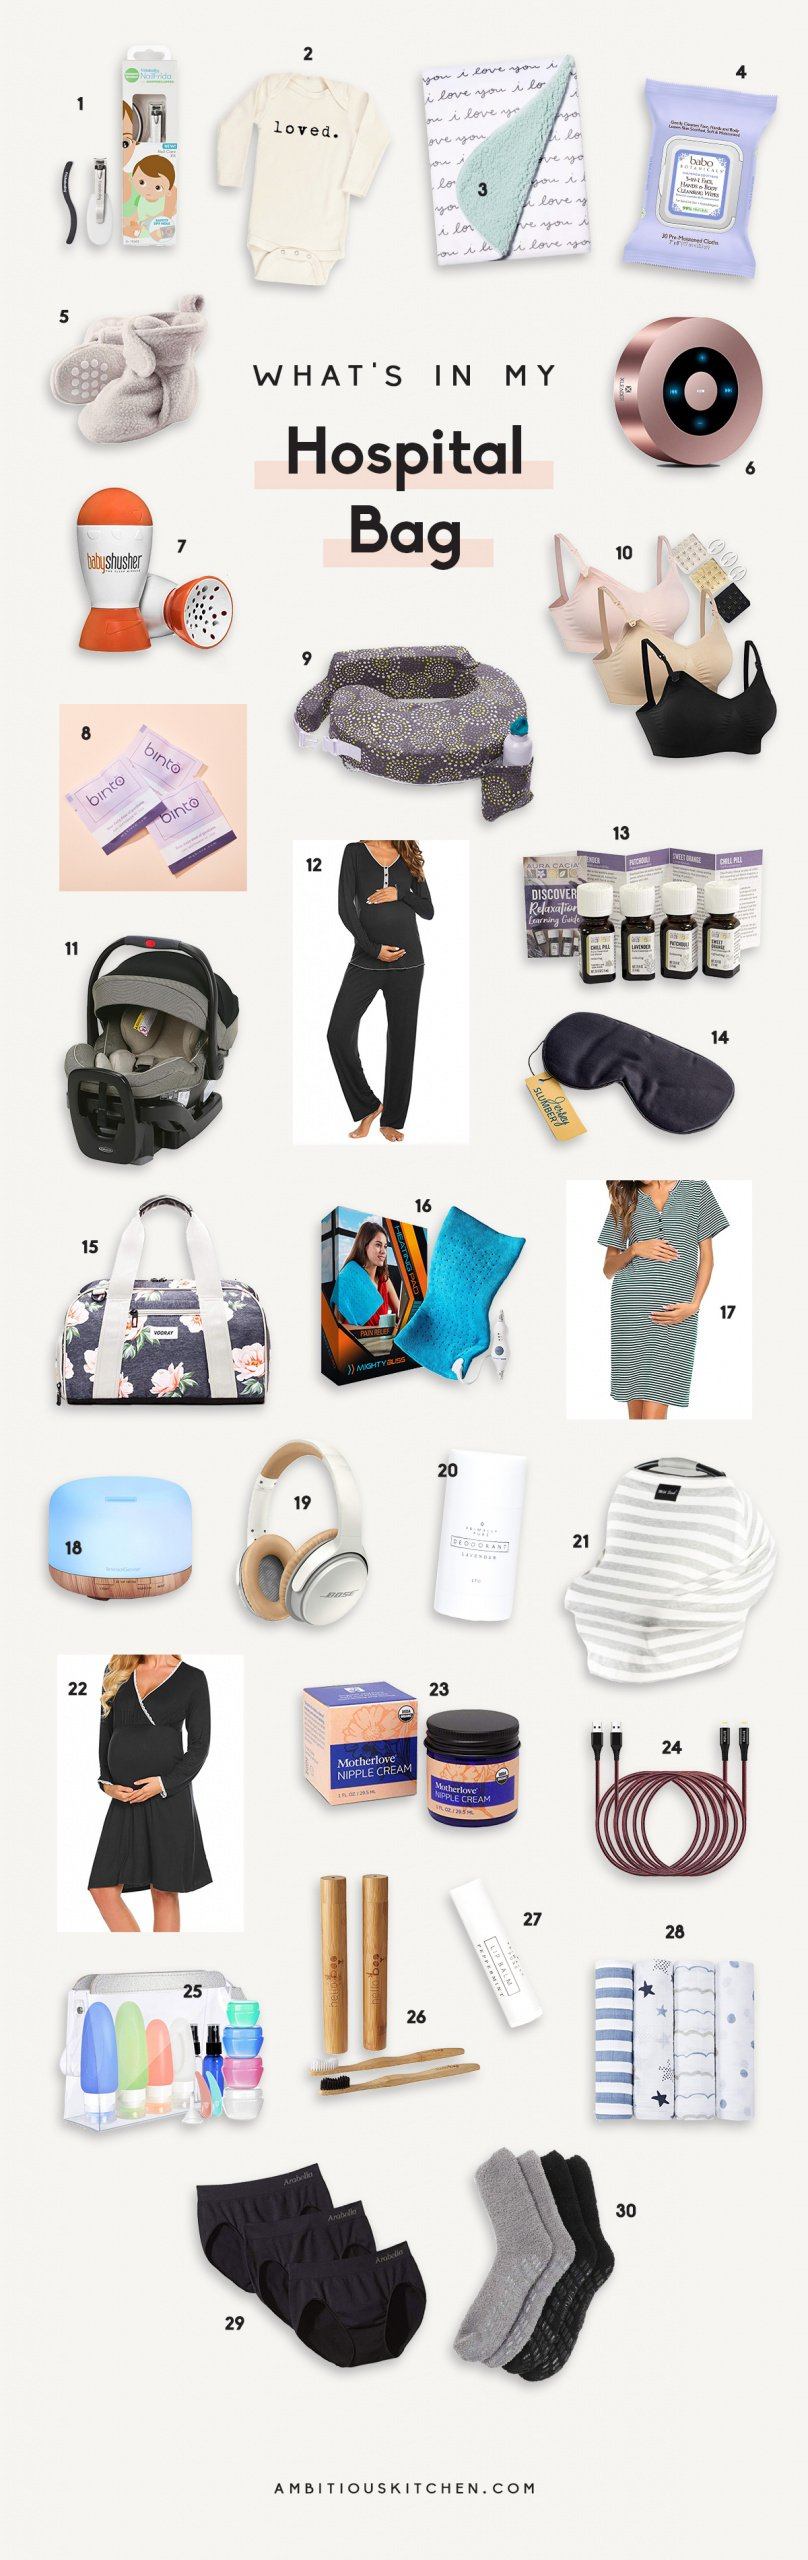 collage of items to put in a hospital bag